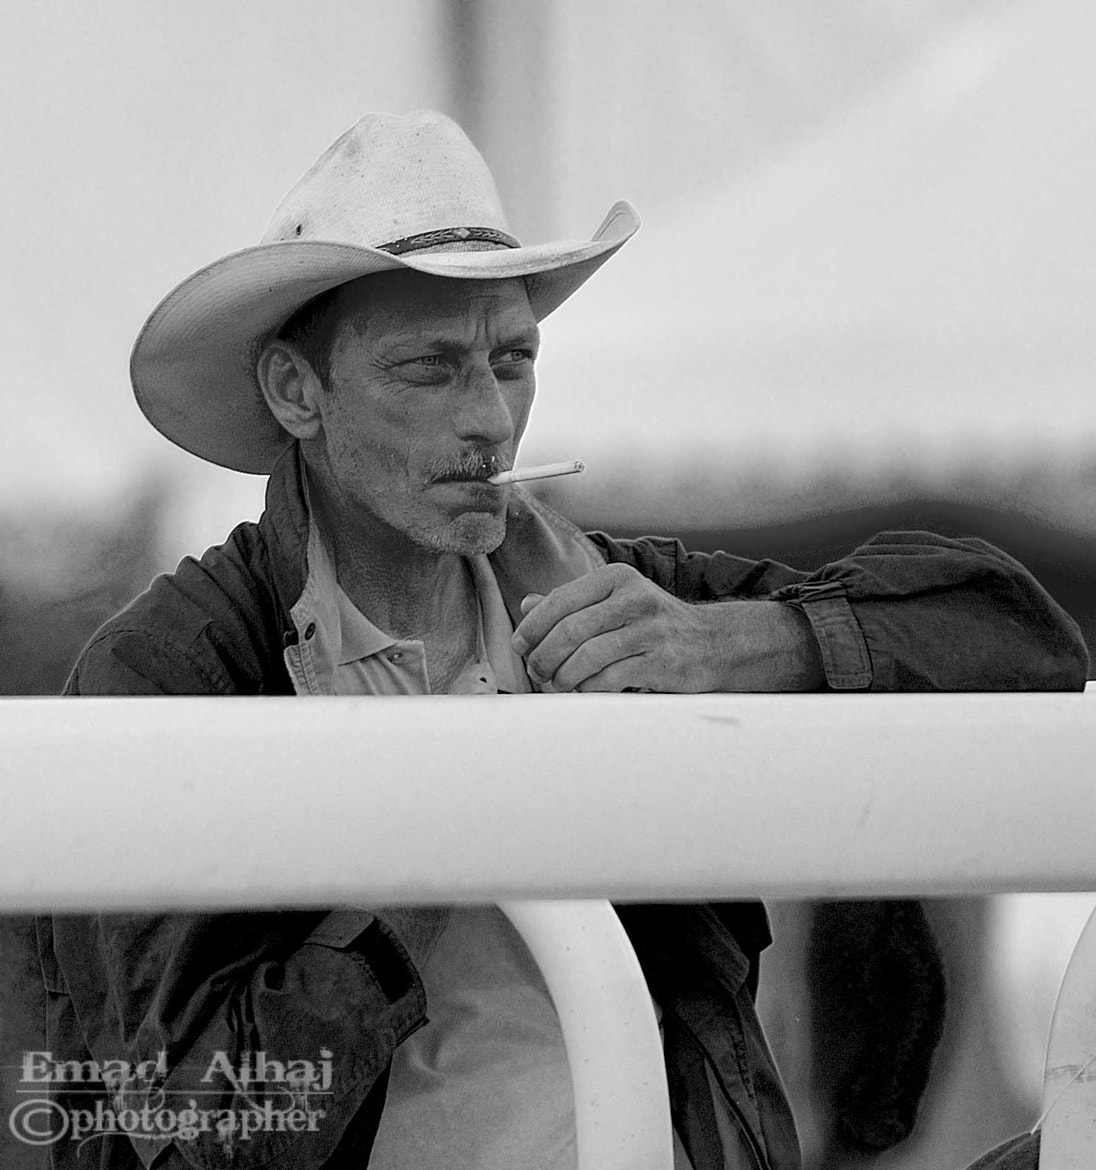 Photograph The Cowboy by Dr.Emad Alhaj on 500px